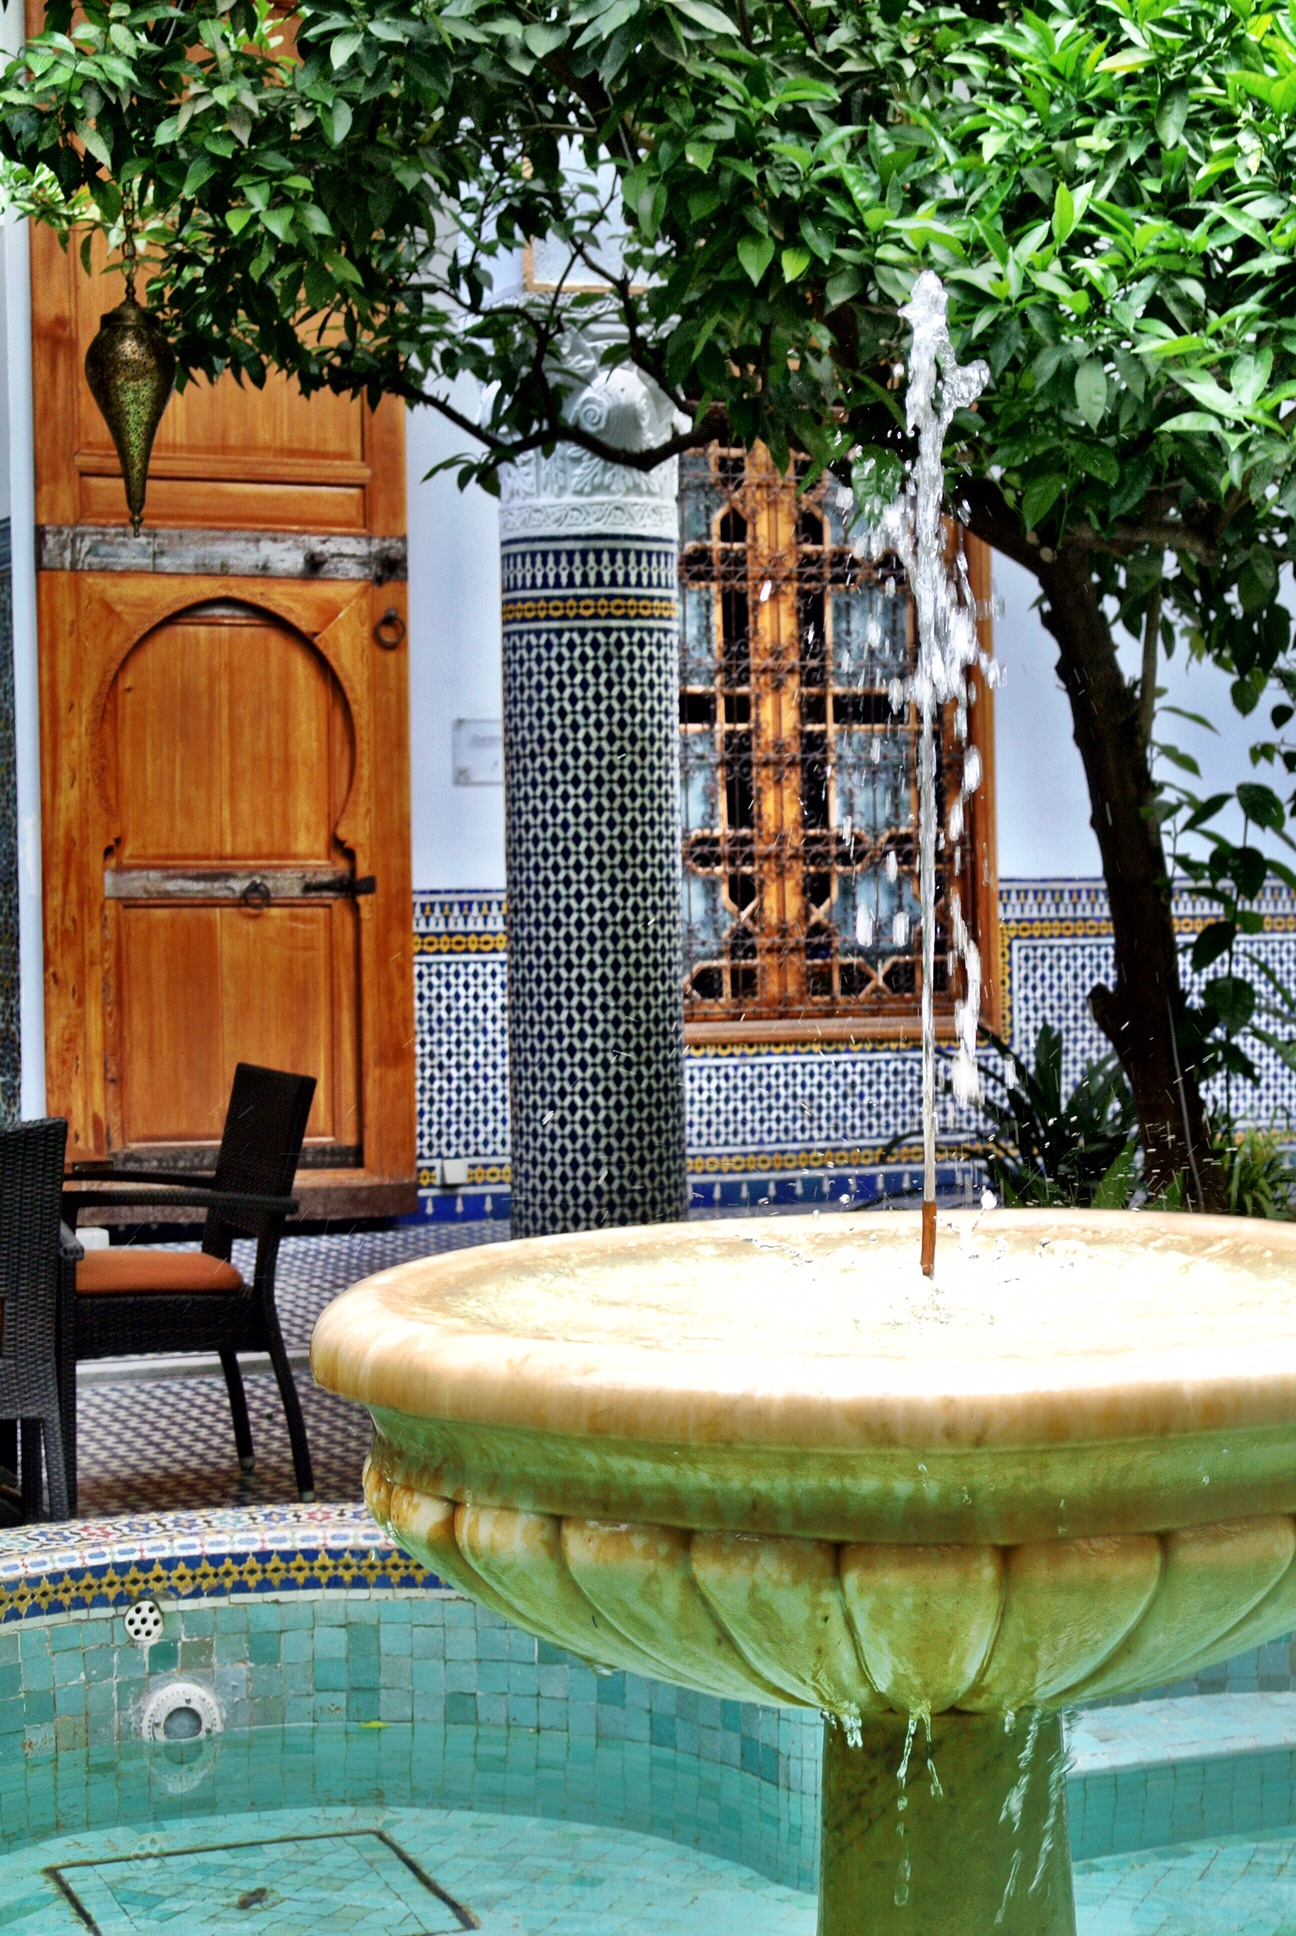 The courtyard fountain at the impressive Palais Amani, located in the heart of Fès' old city